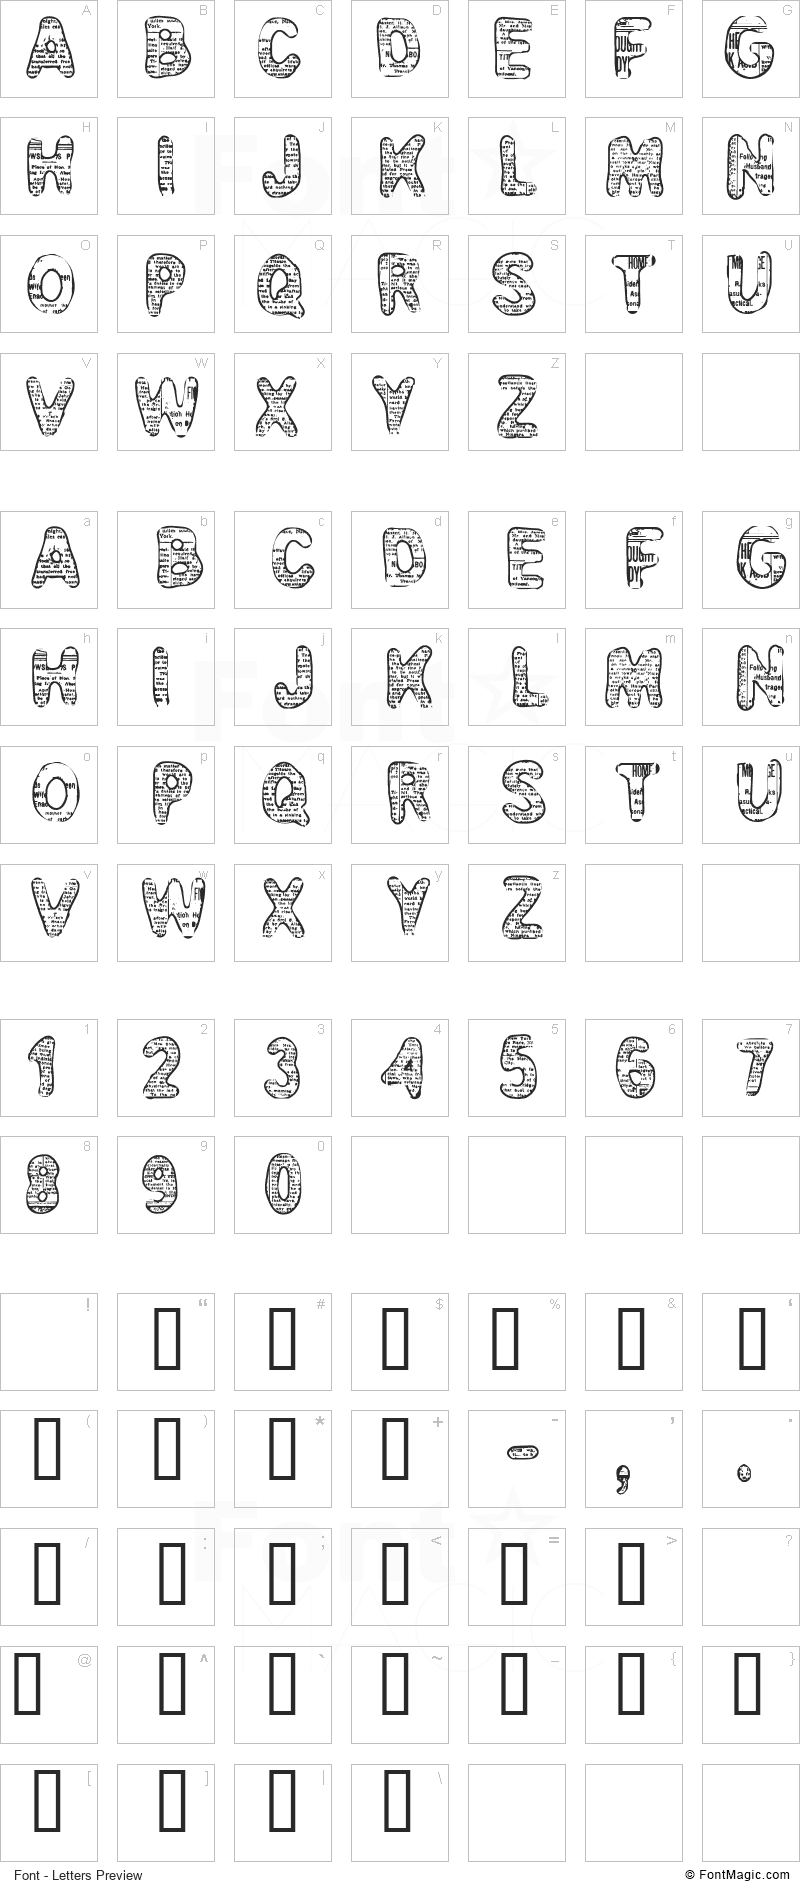 CF Bad News Font - All Latters Preview Chart